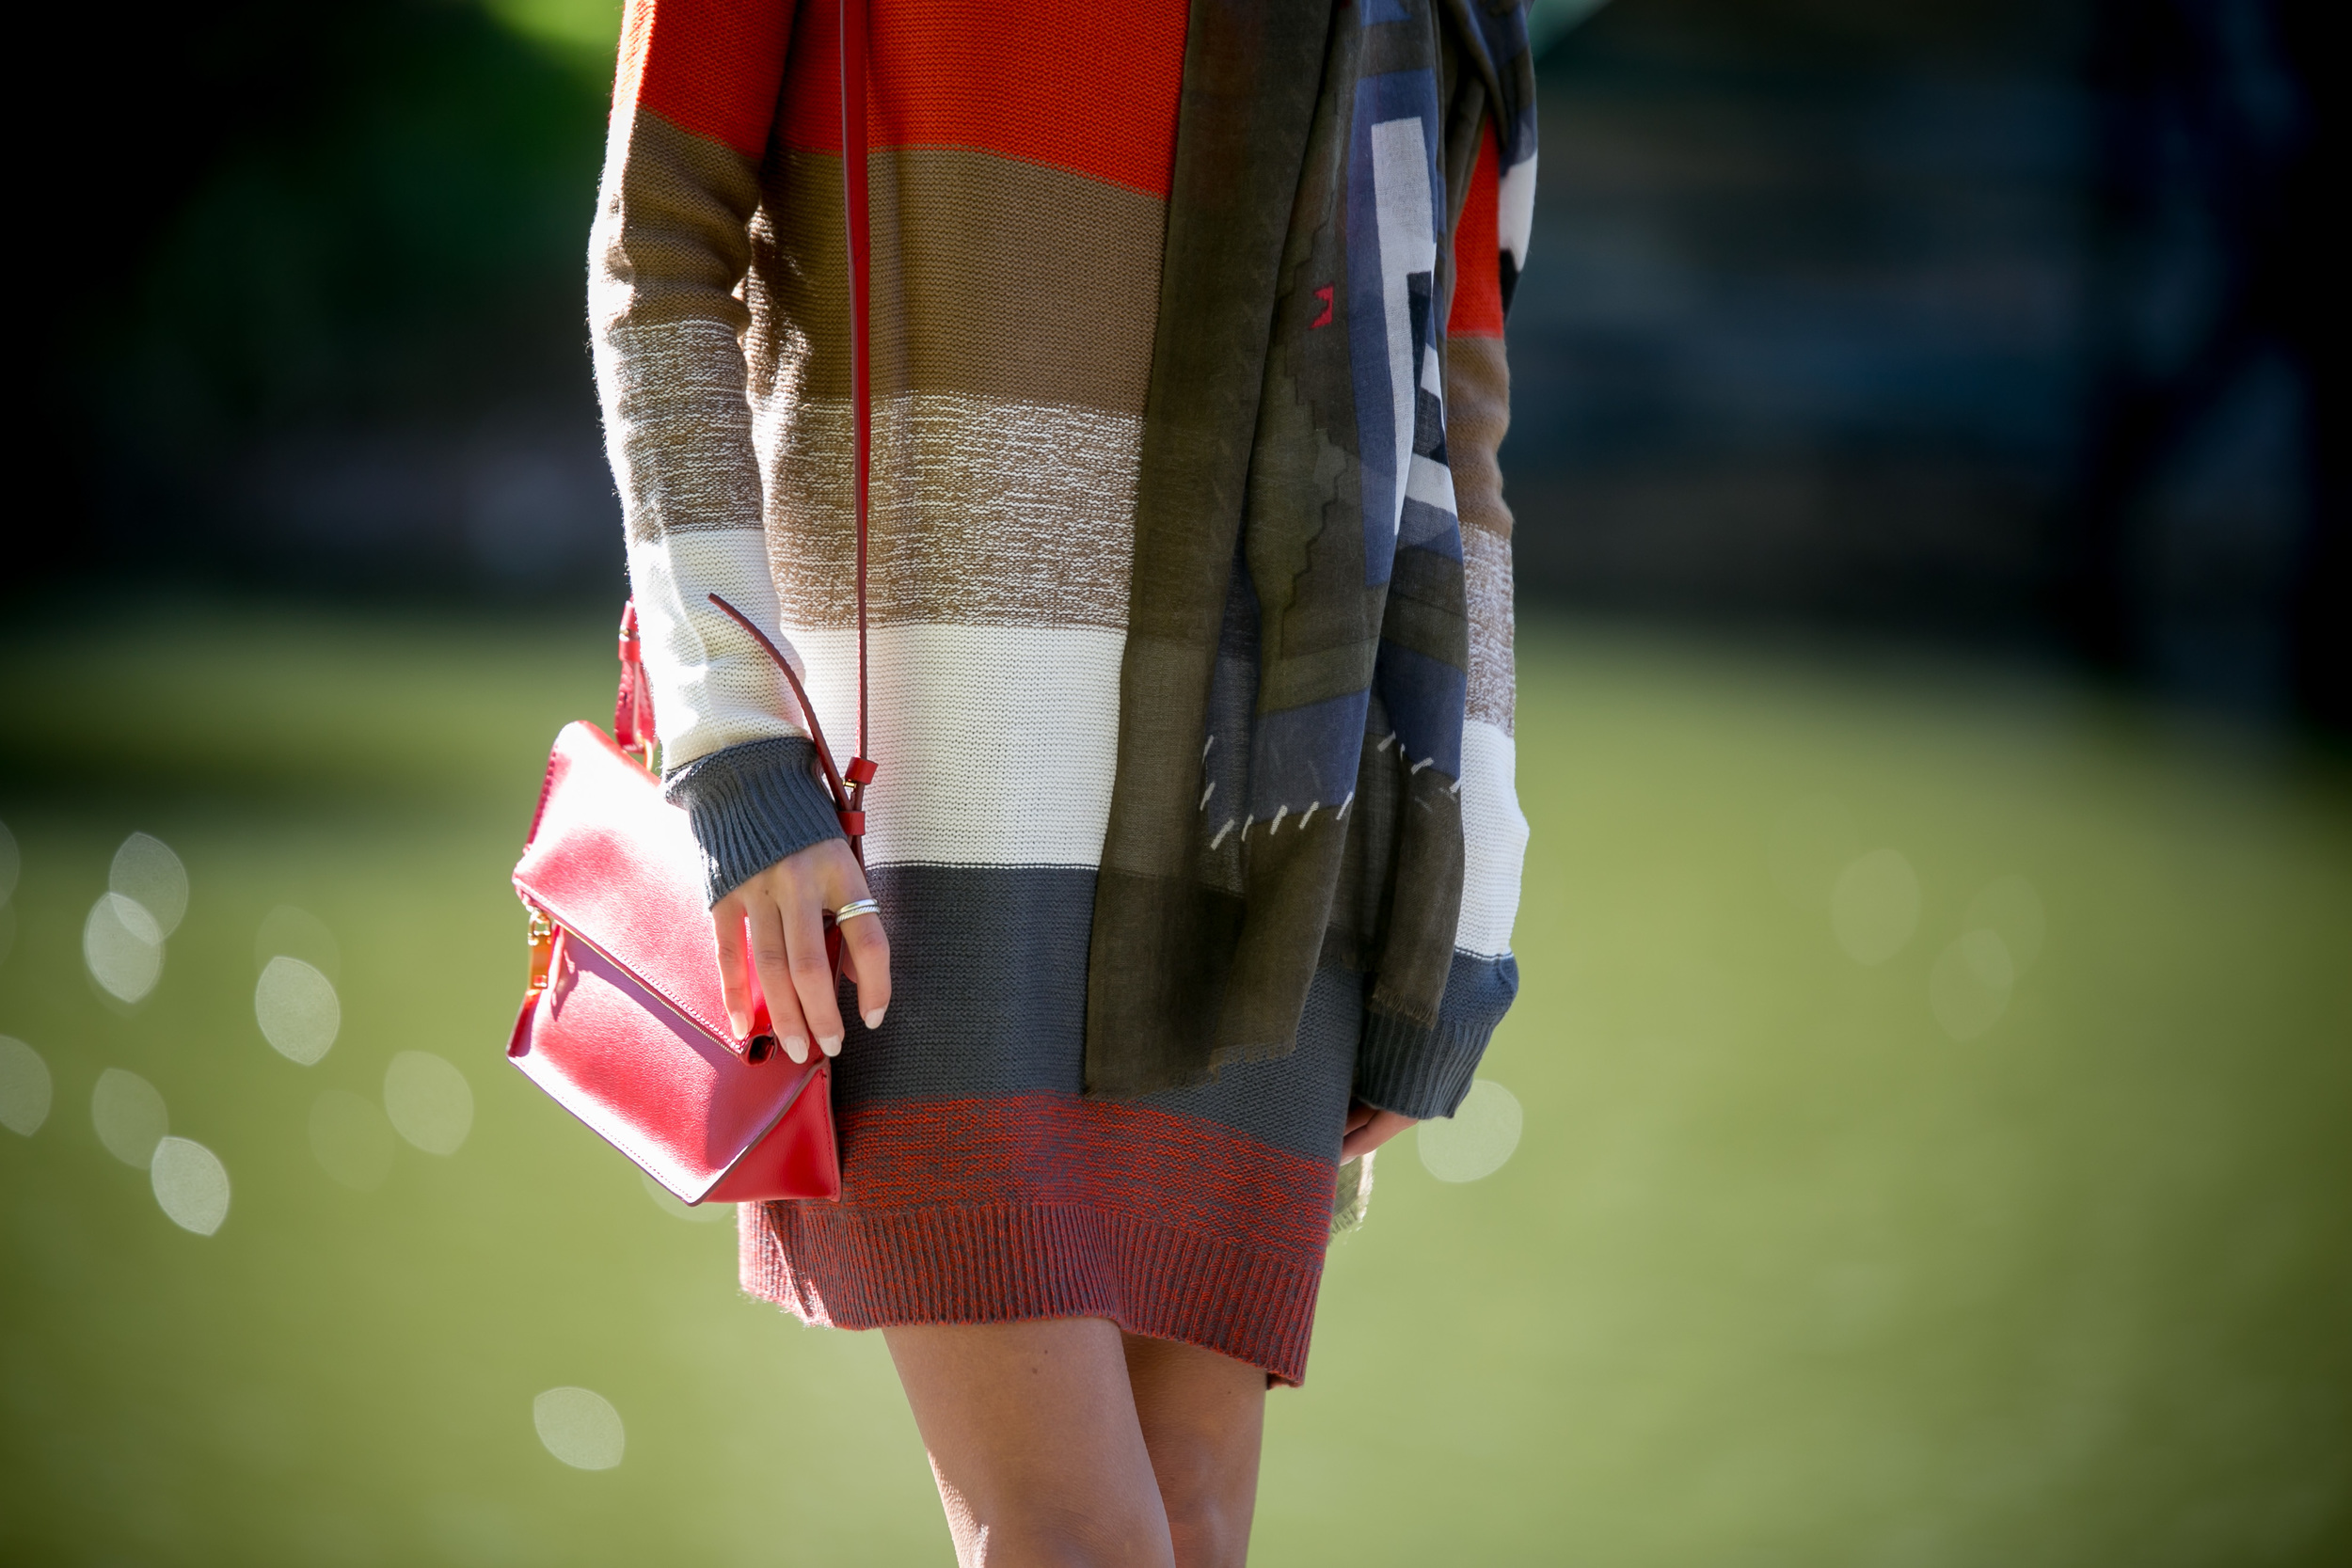 Dress: BB Dakota | Booties: Vince |Bag: J.Crew  (more colors available)    Dino Petrocelli Photography